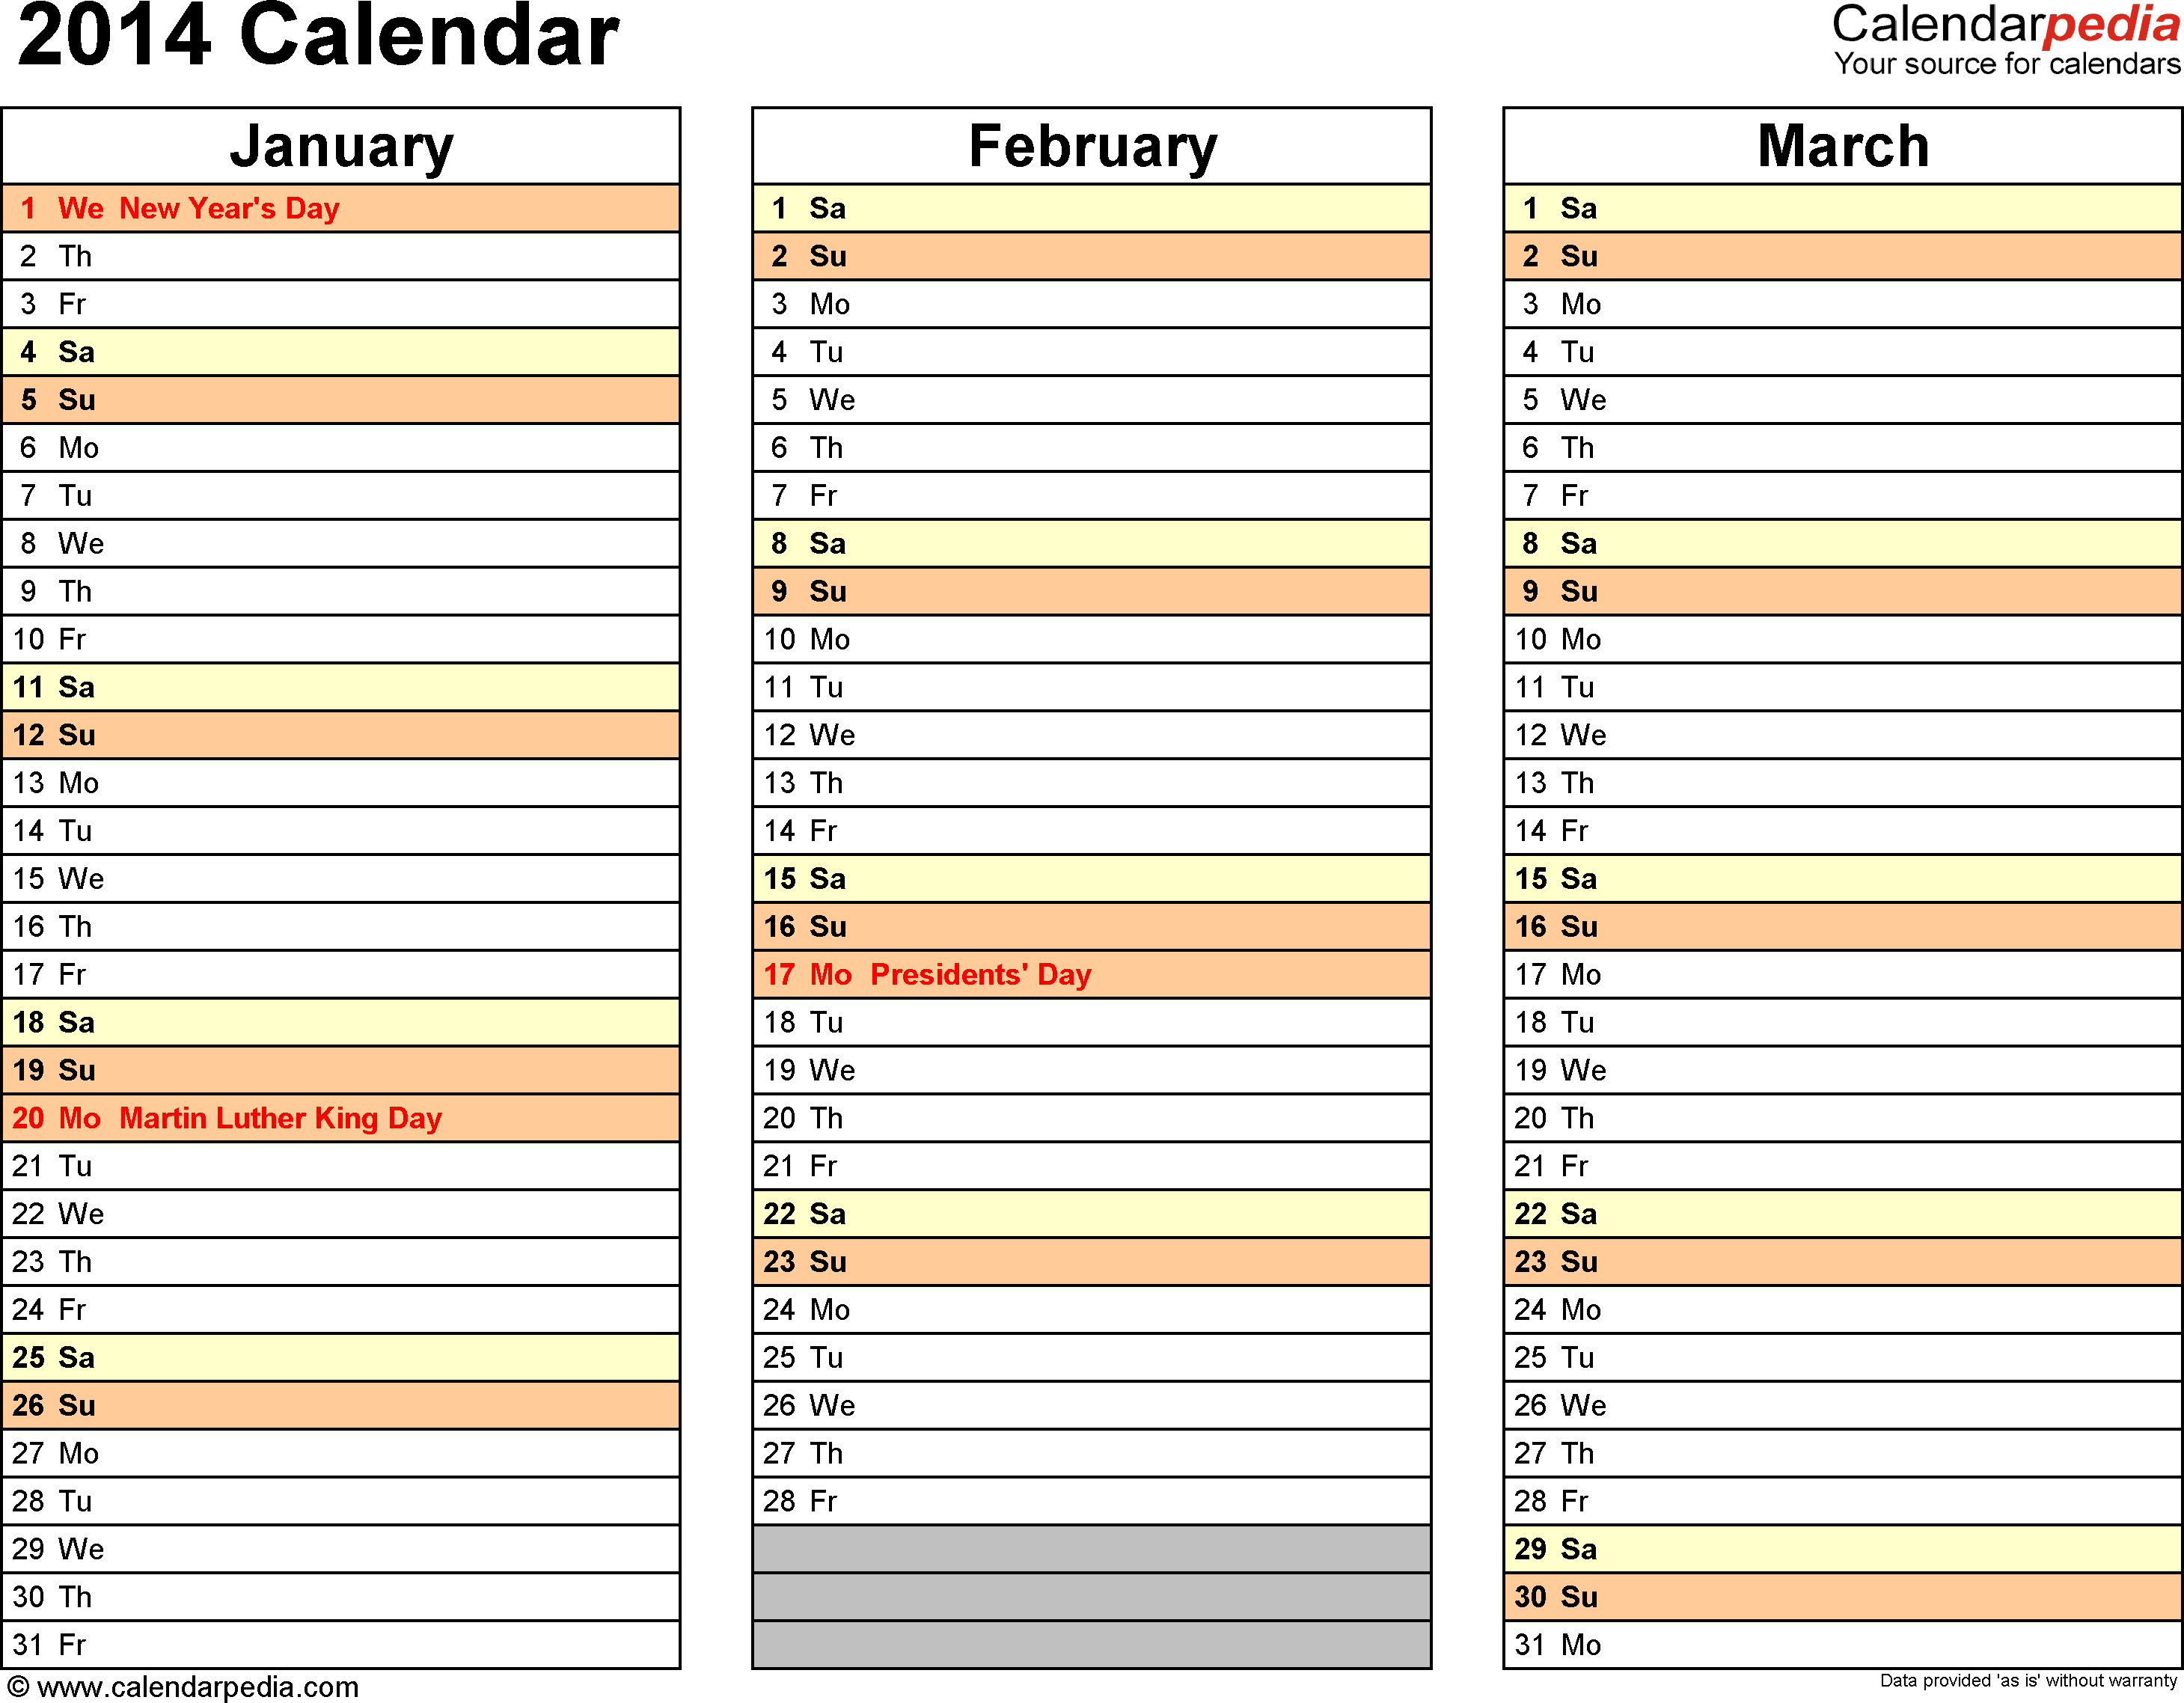 Template 6: 2014 Calendar for Word, landscape orientation, months horizontally, 4 pages